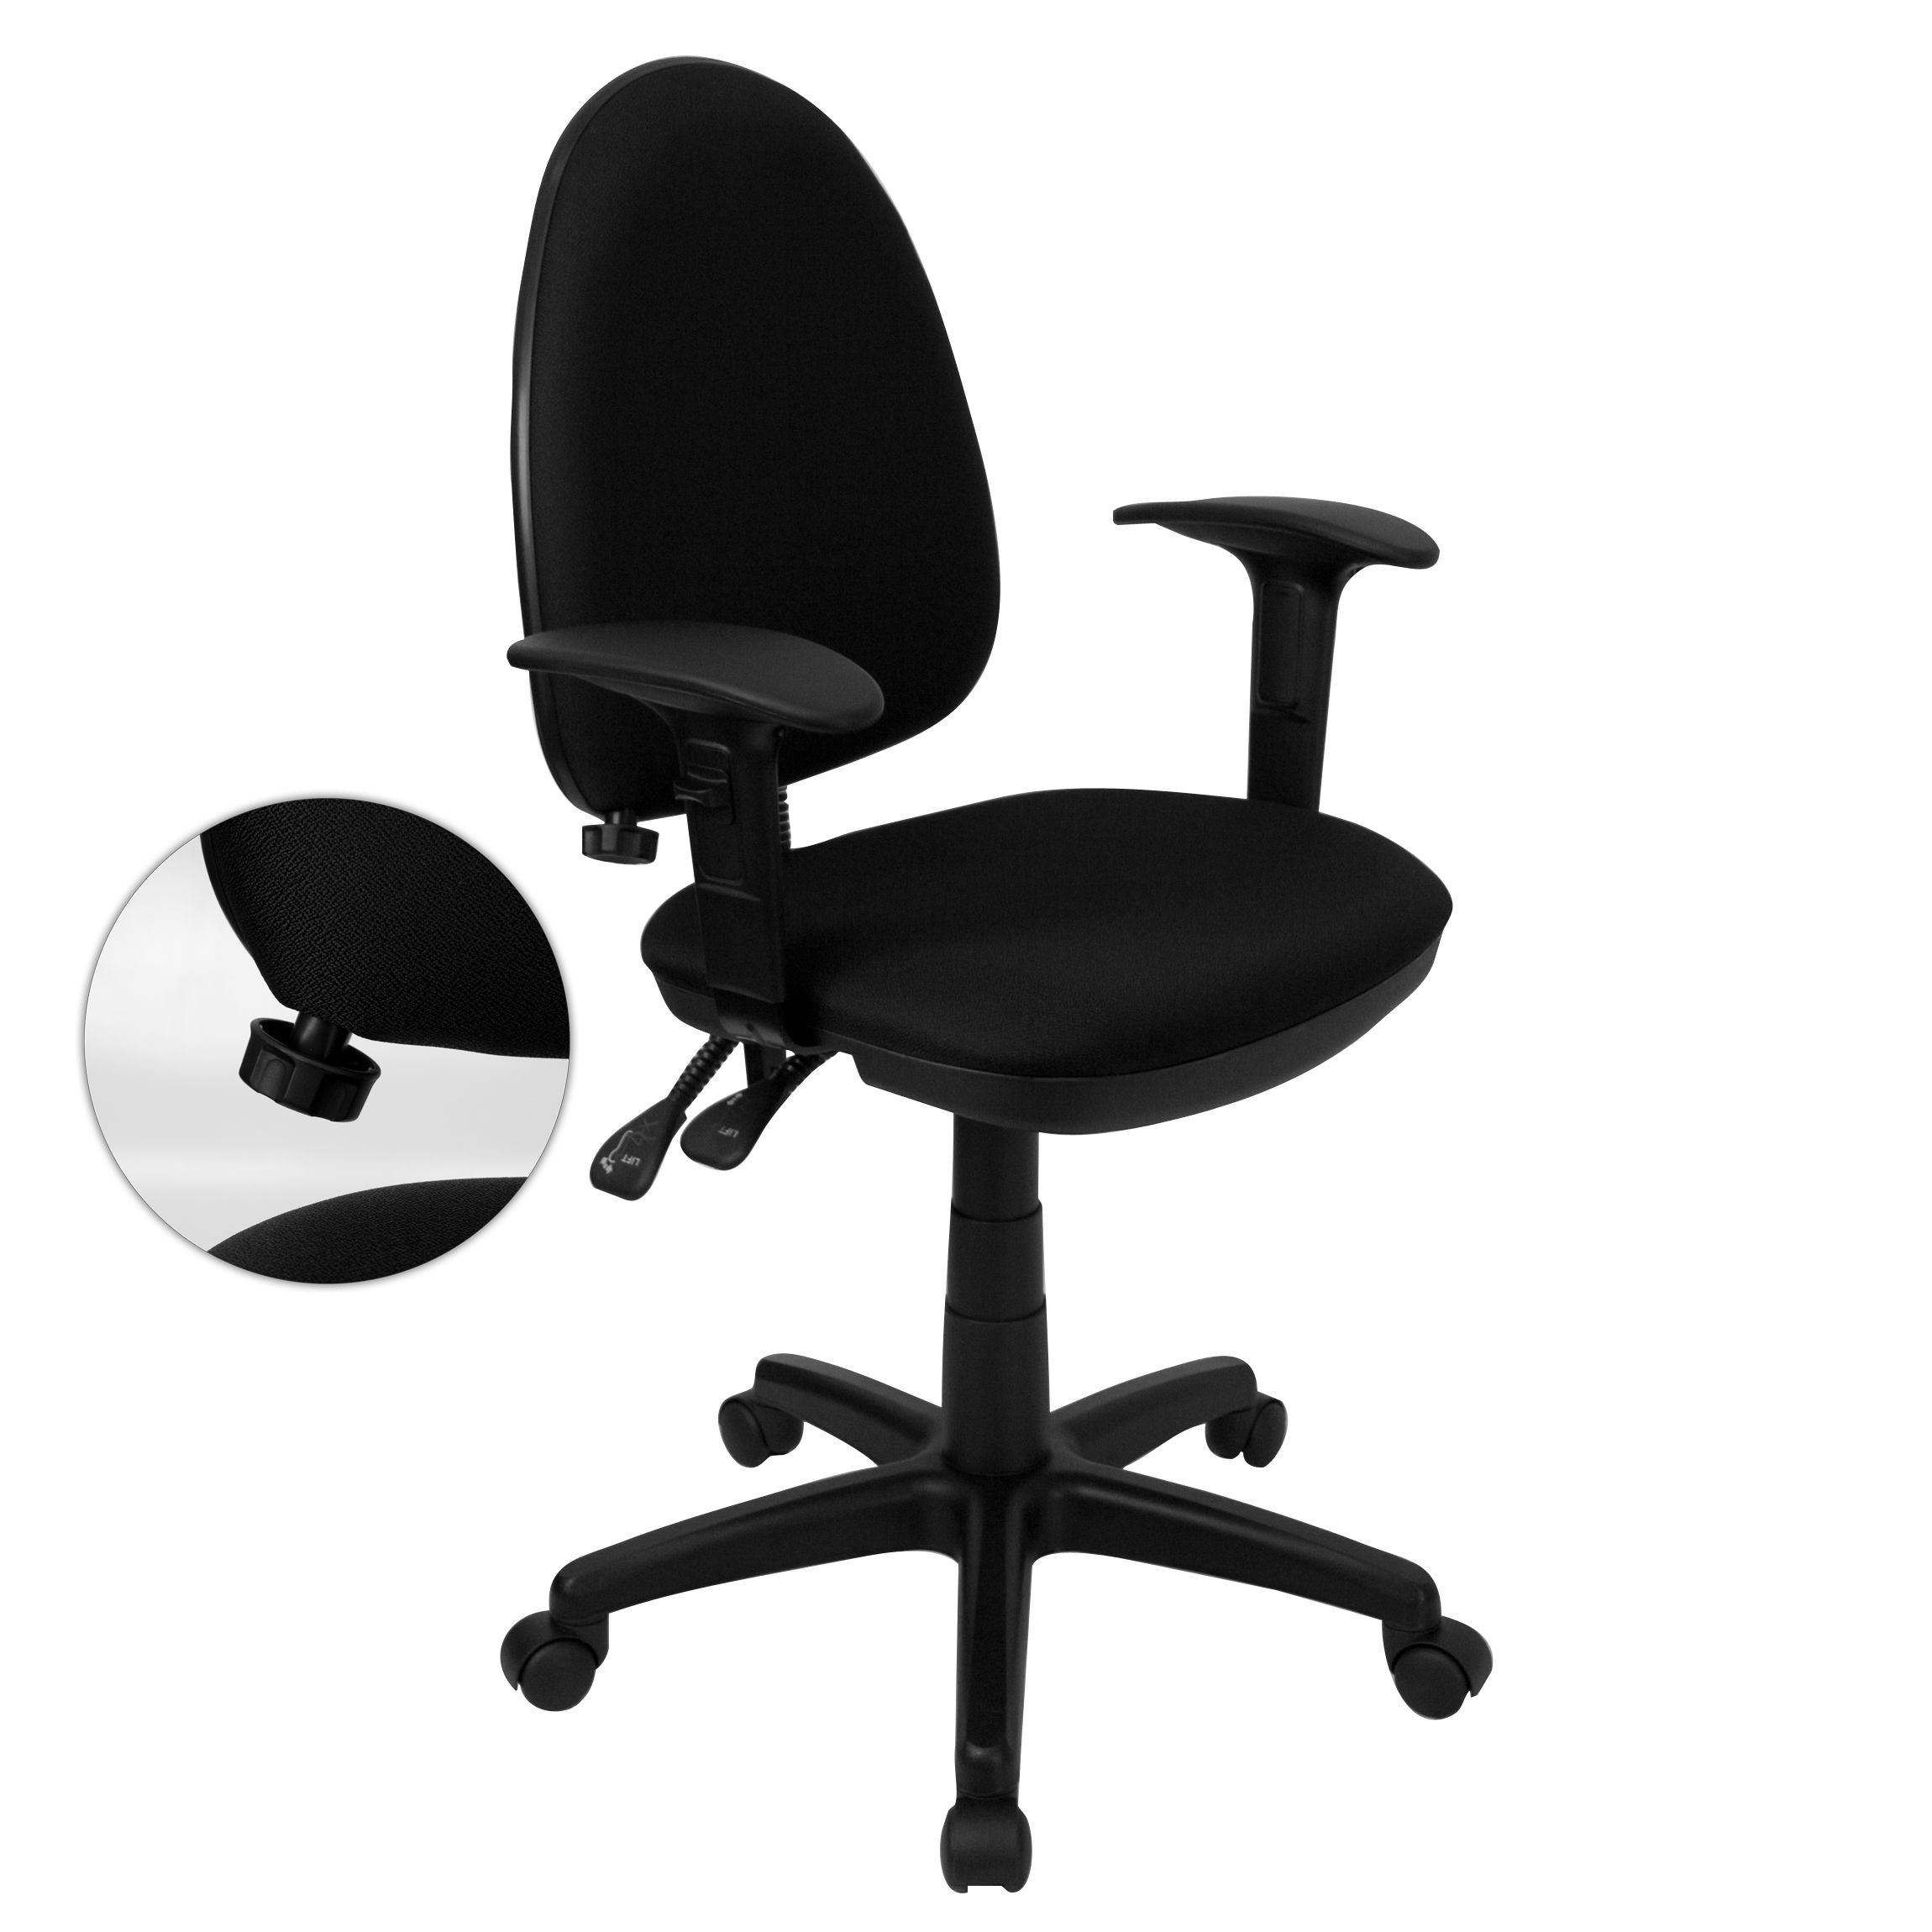 Flash Furniture WL-A654MG-BK-A-GG Black Fabric Multi-Function Task Chair with Adjustable Lumbar Support